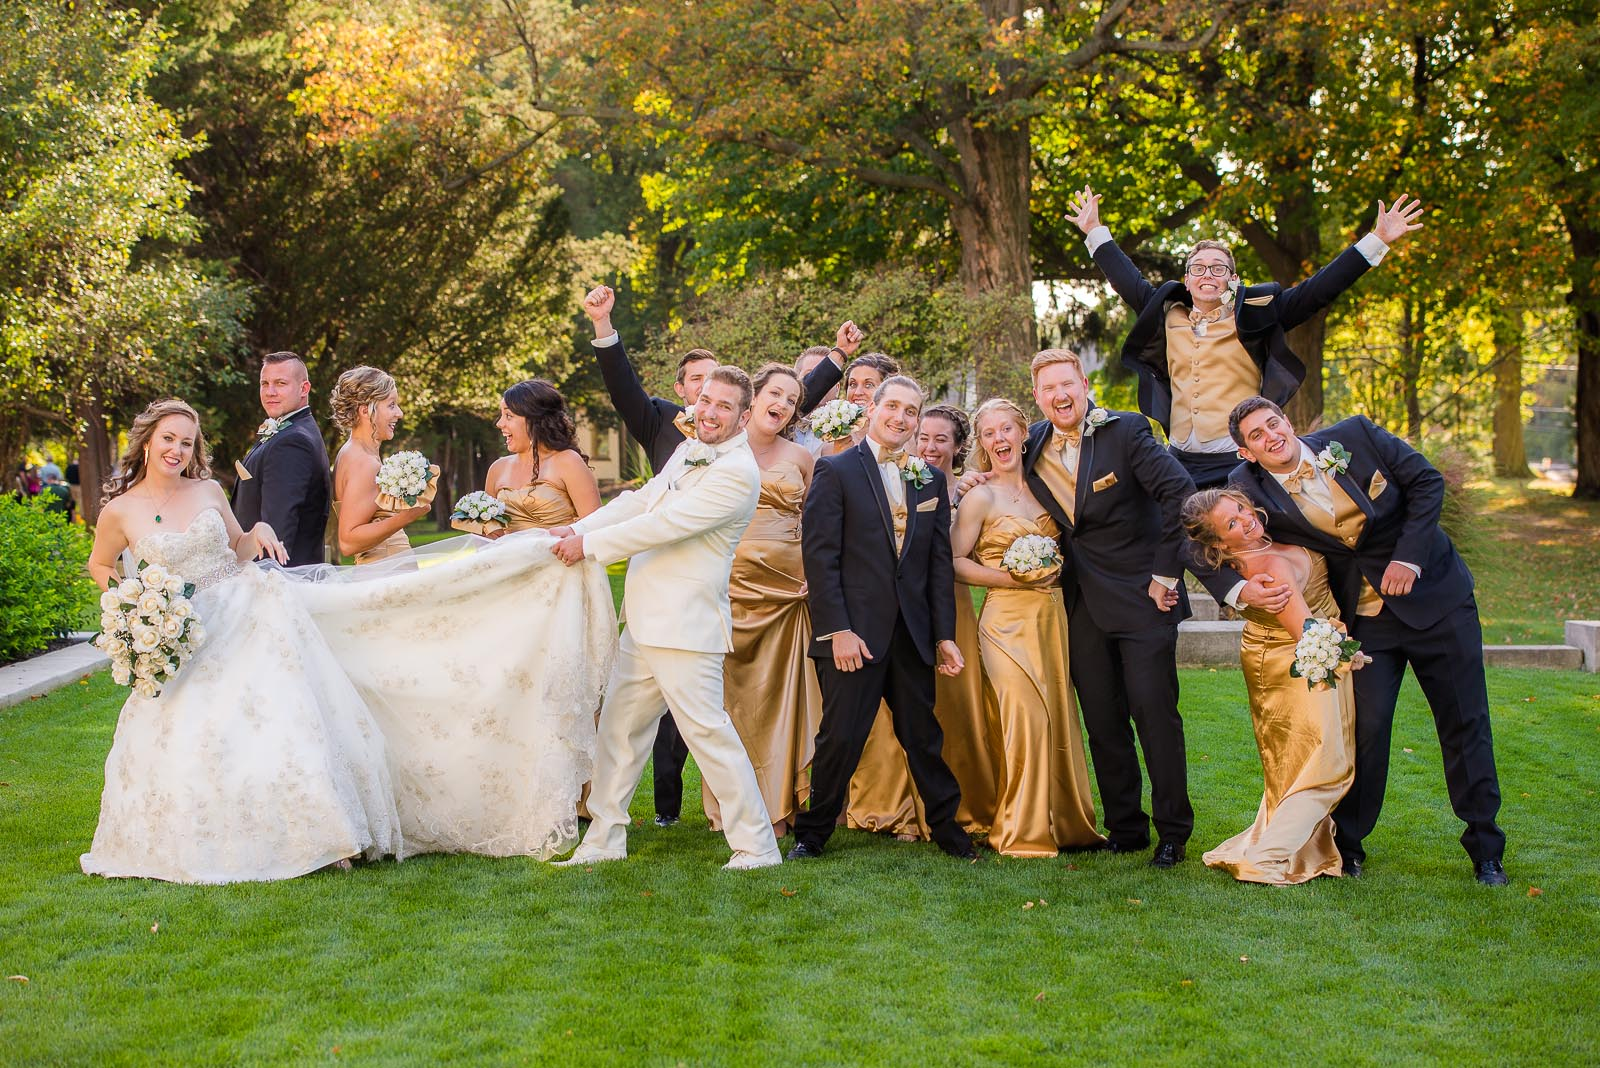 Eric_and_Christy_Photography_Blog_Wedding_Eva_Andrew-22